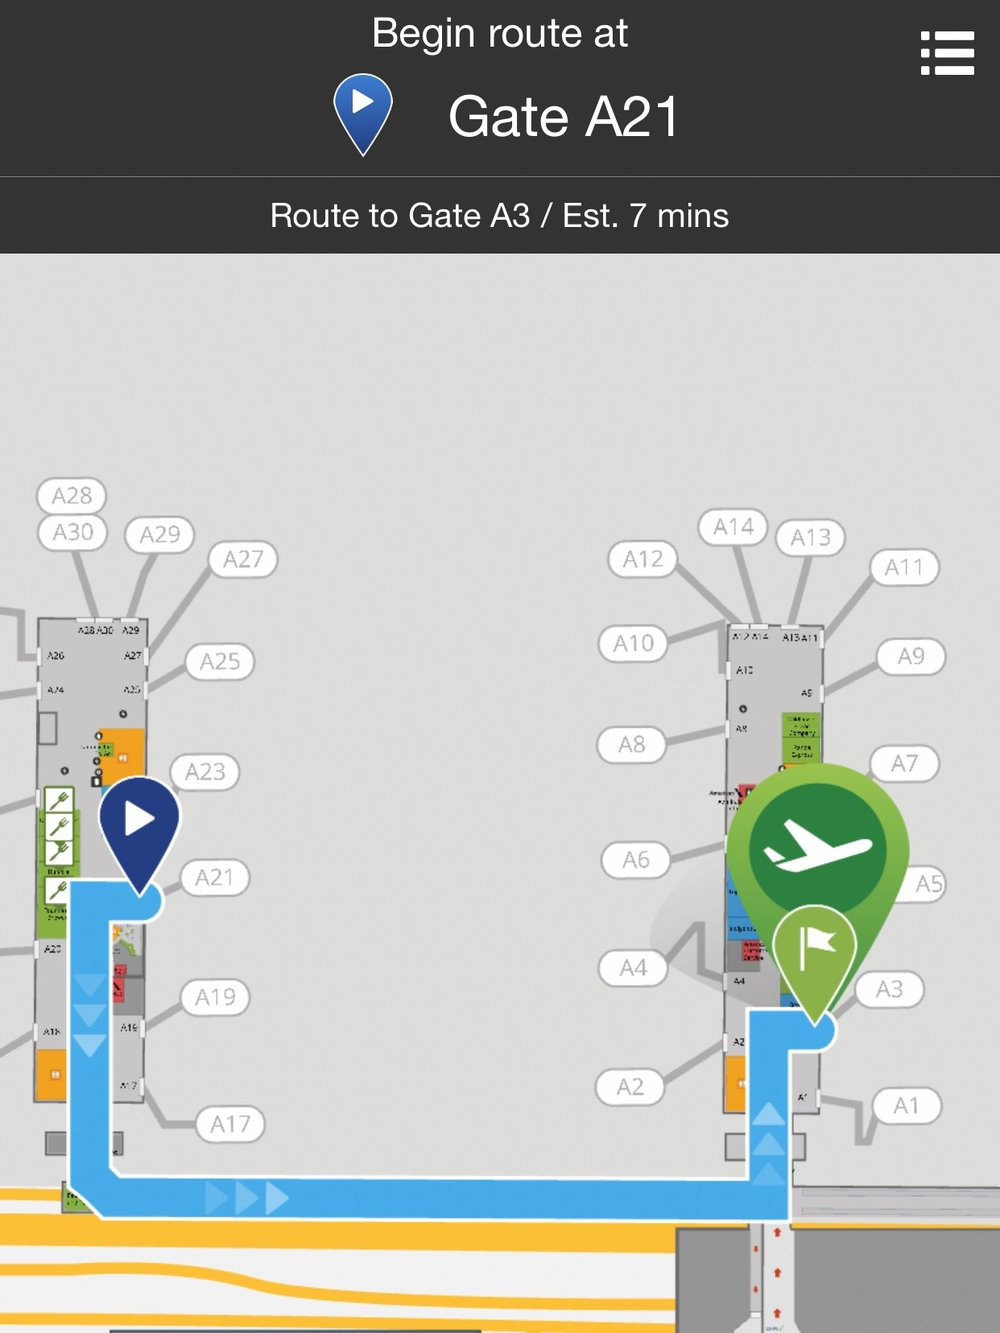 American's App offers convenient step-by-step directions to your next gate or baggage claim if you're not sure where to go next.